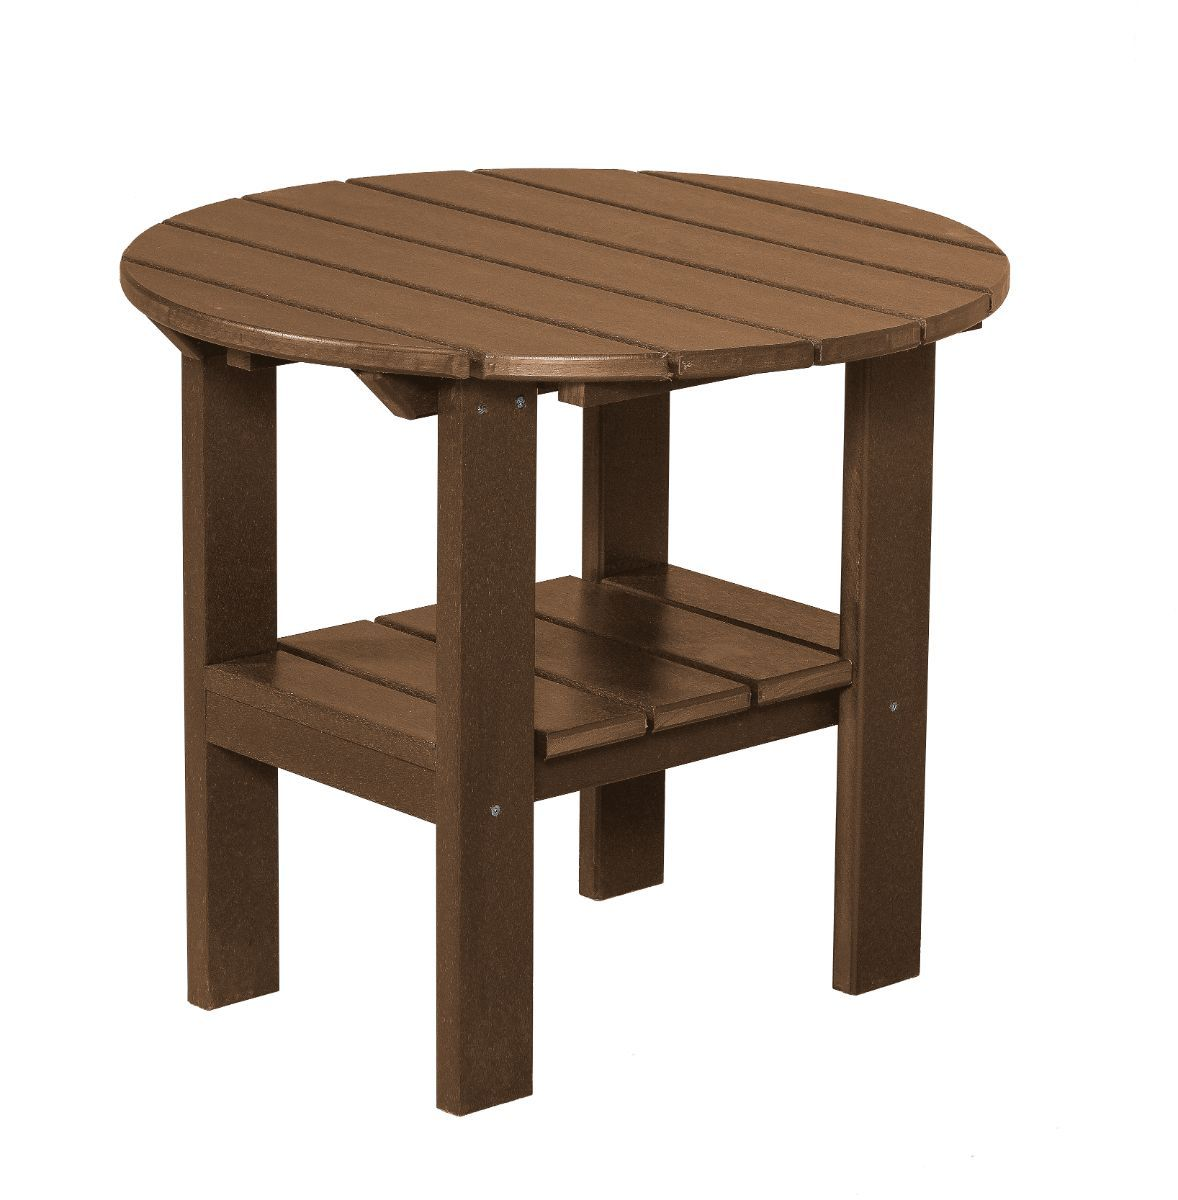 Tudor Brown Odessa Round Outdoor Side Table